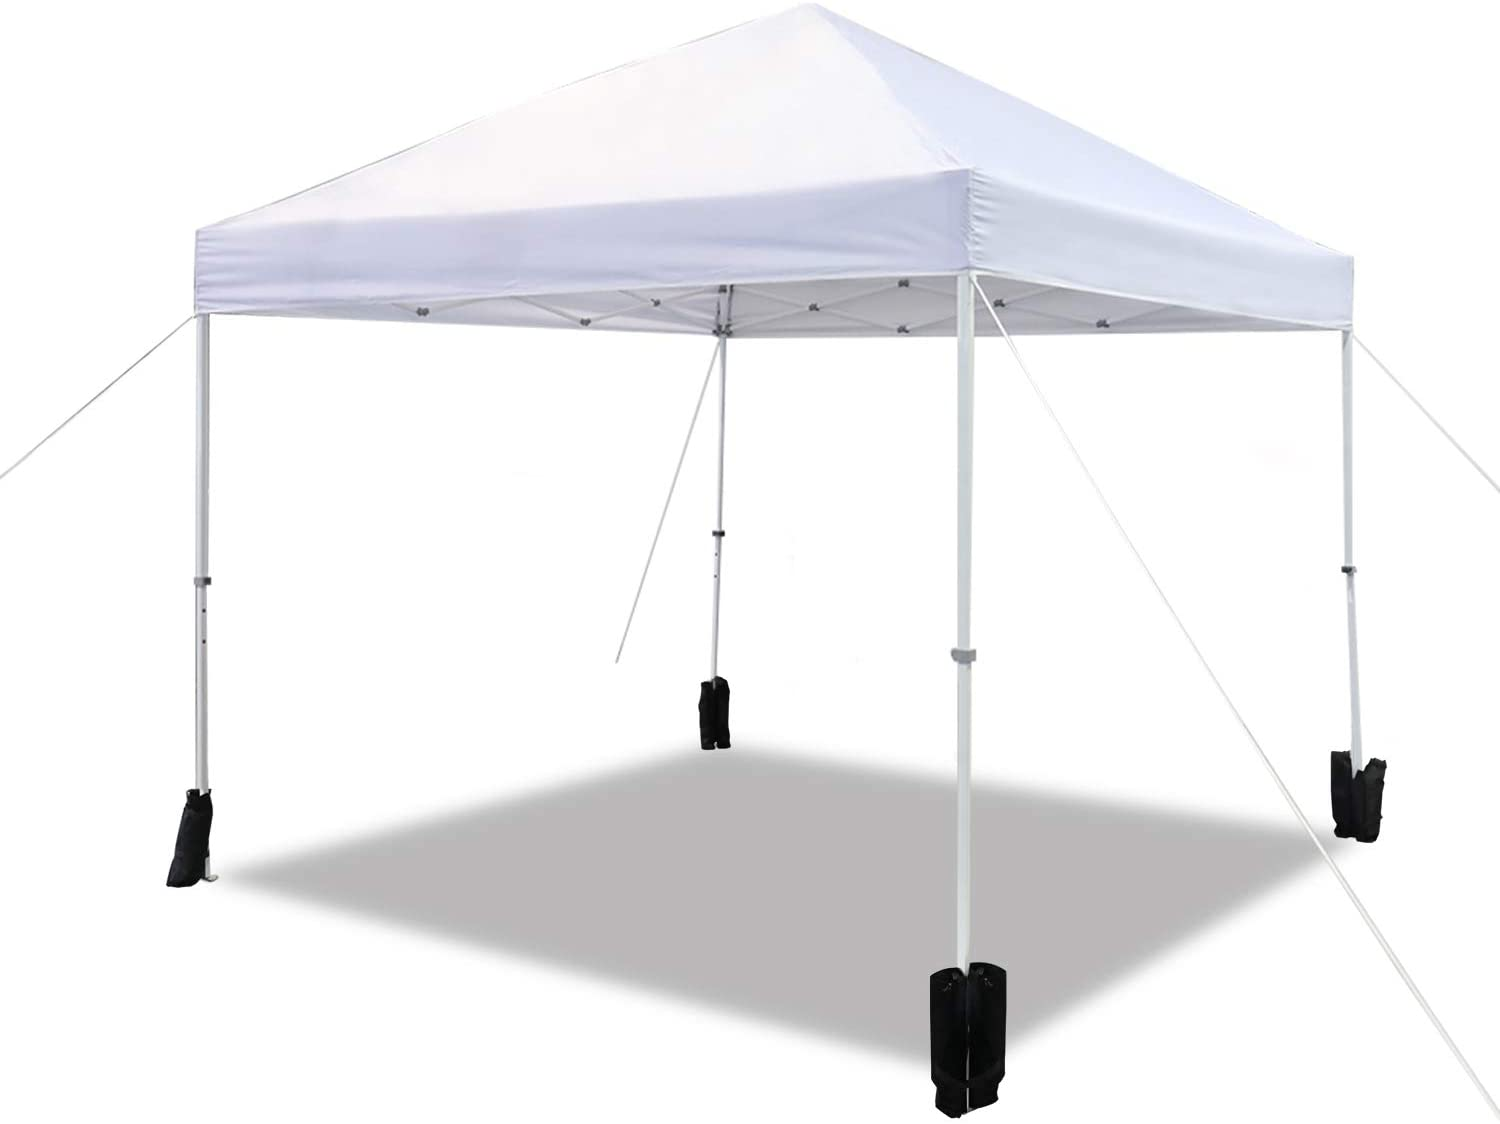 AmazonBasics Outdoor Classic Pop Up Canopy, 10ft x 10ft with Wheeled Carry, 4-pk weight bag, White